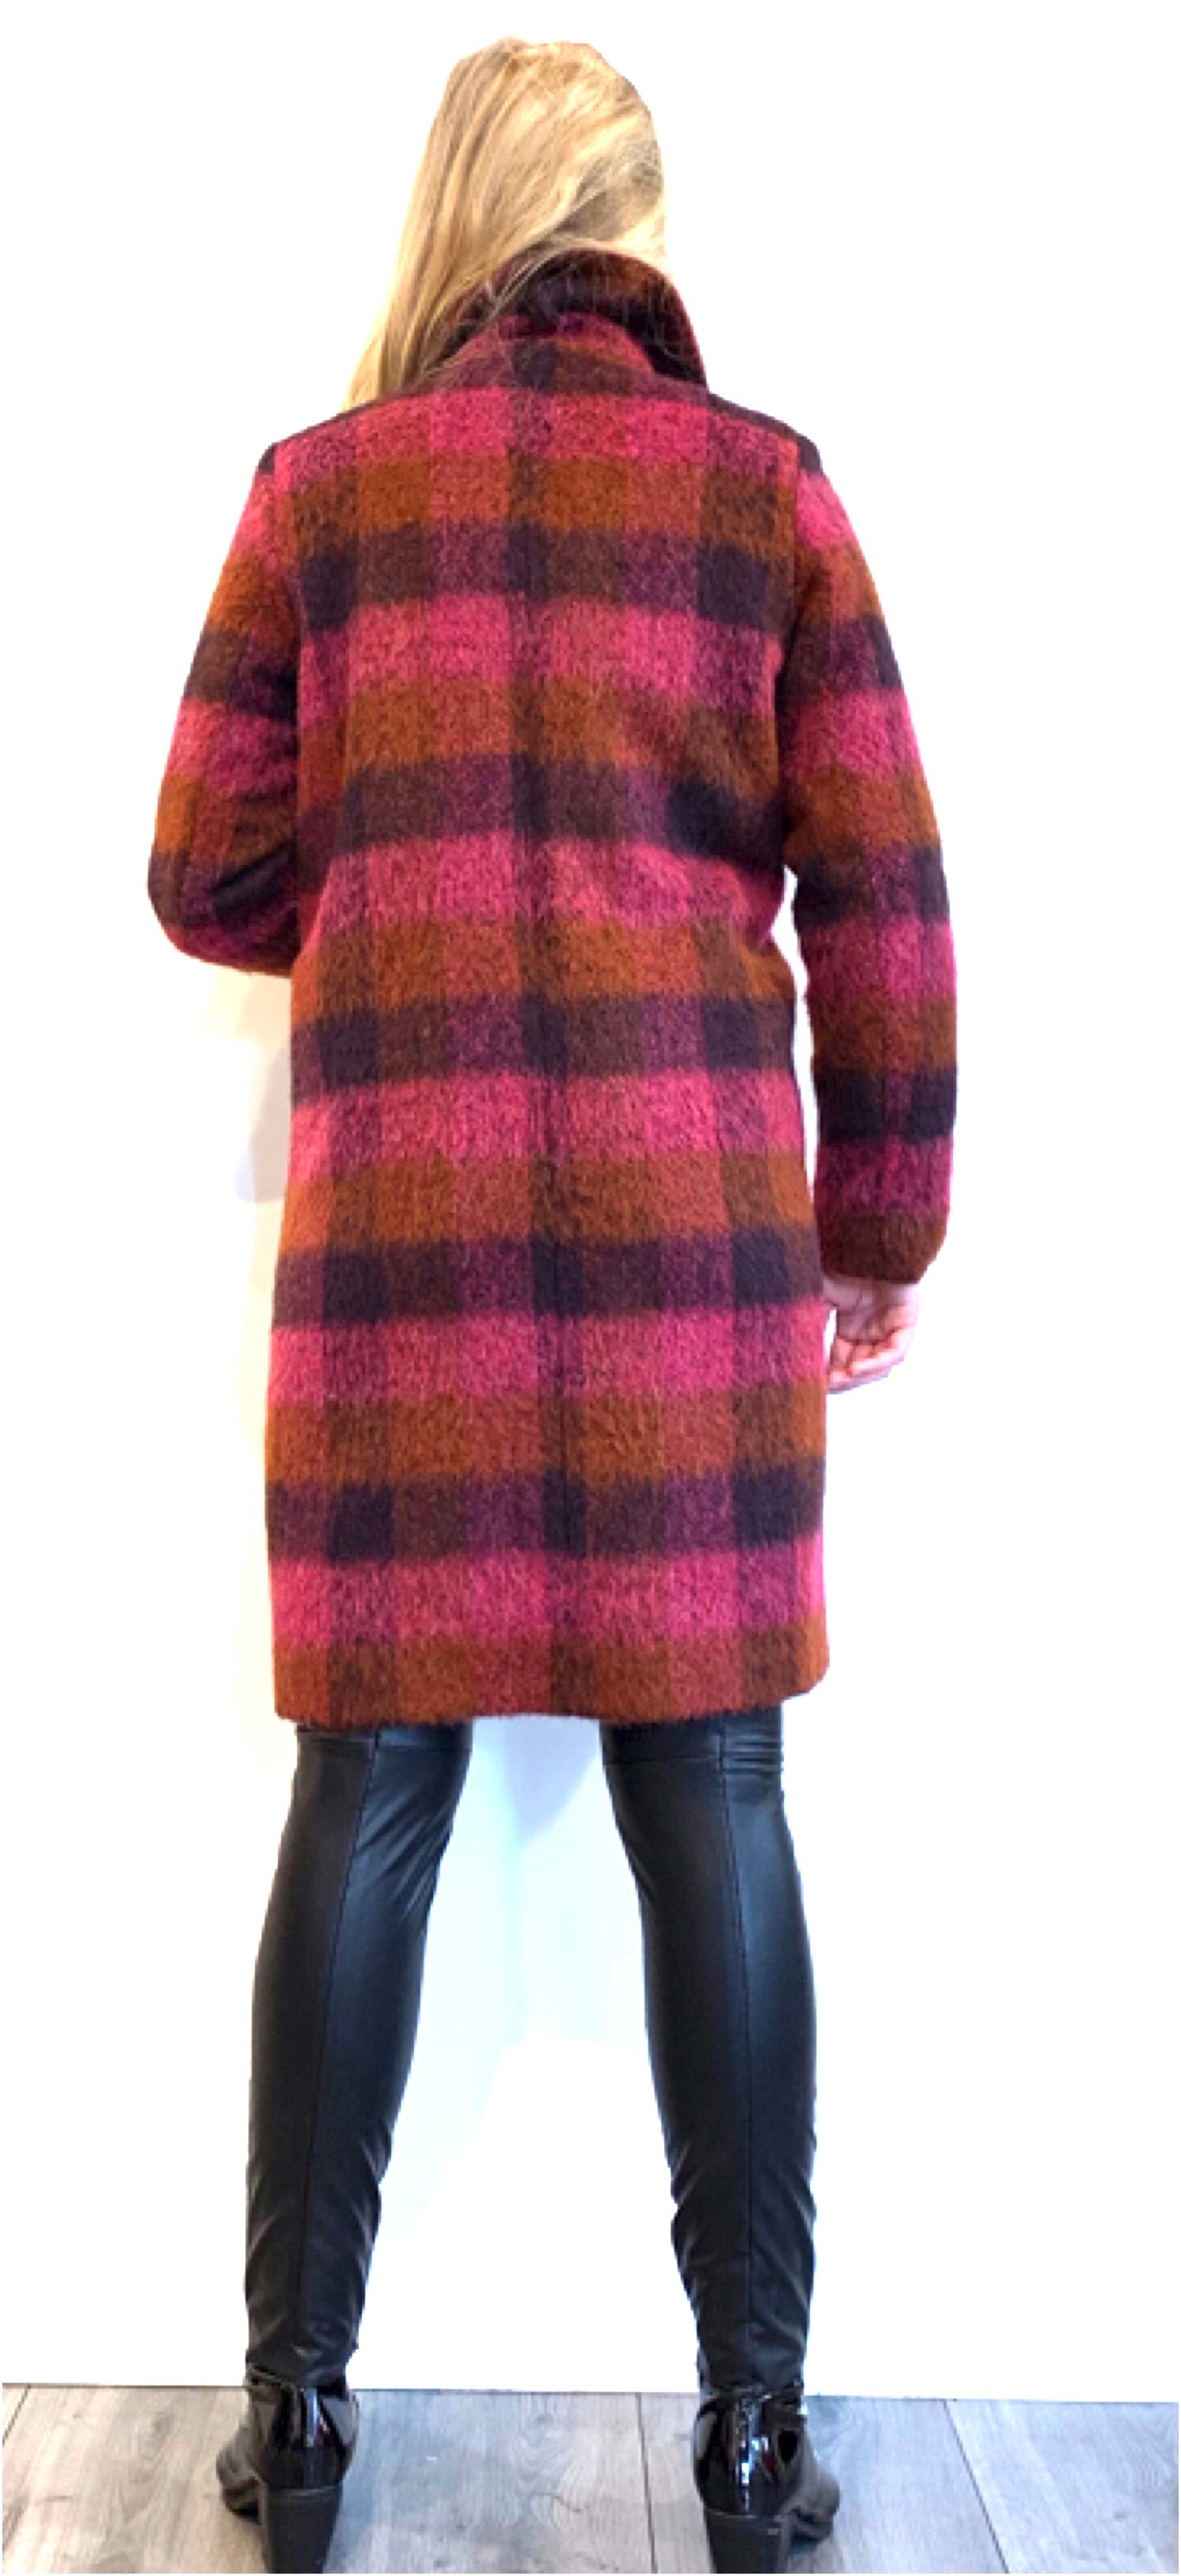 Jas check wool coat